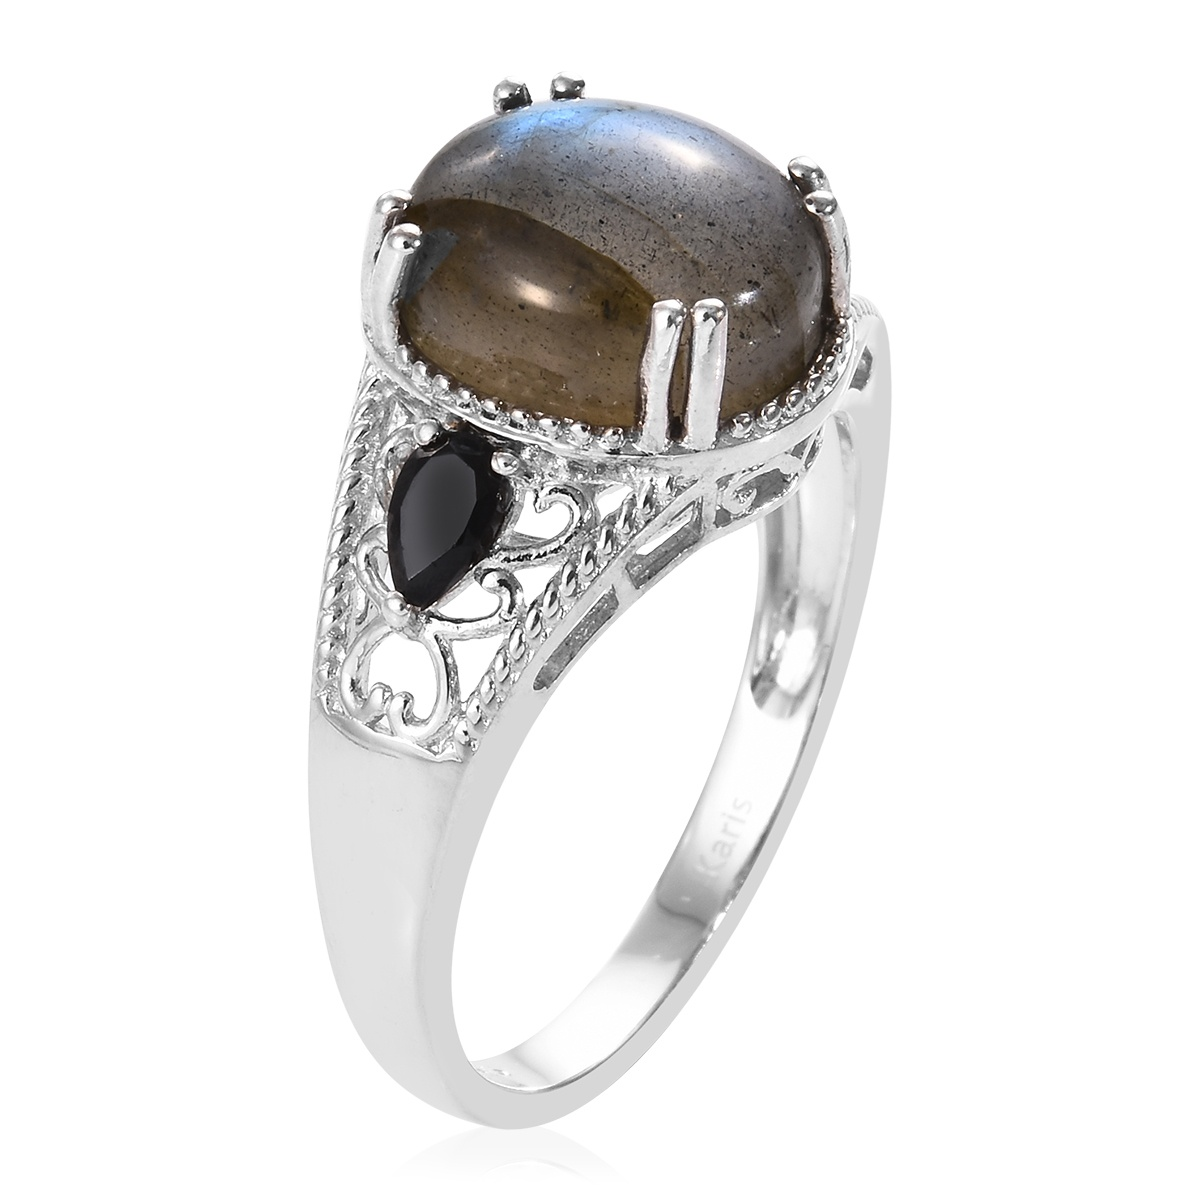 KARIS Malagasy Labradorite, Thai Black Spinel Ring in Platinum Bond Brass (Size 11.0) 6.46 ctw